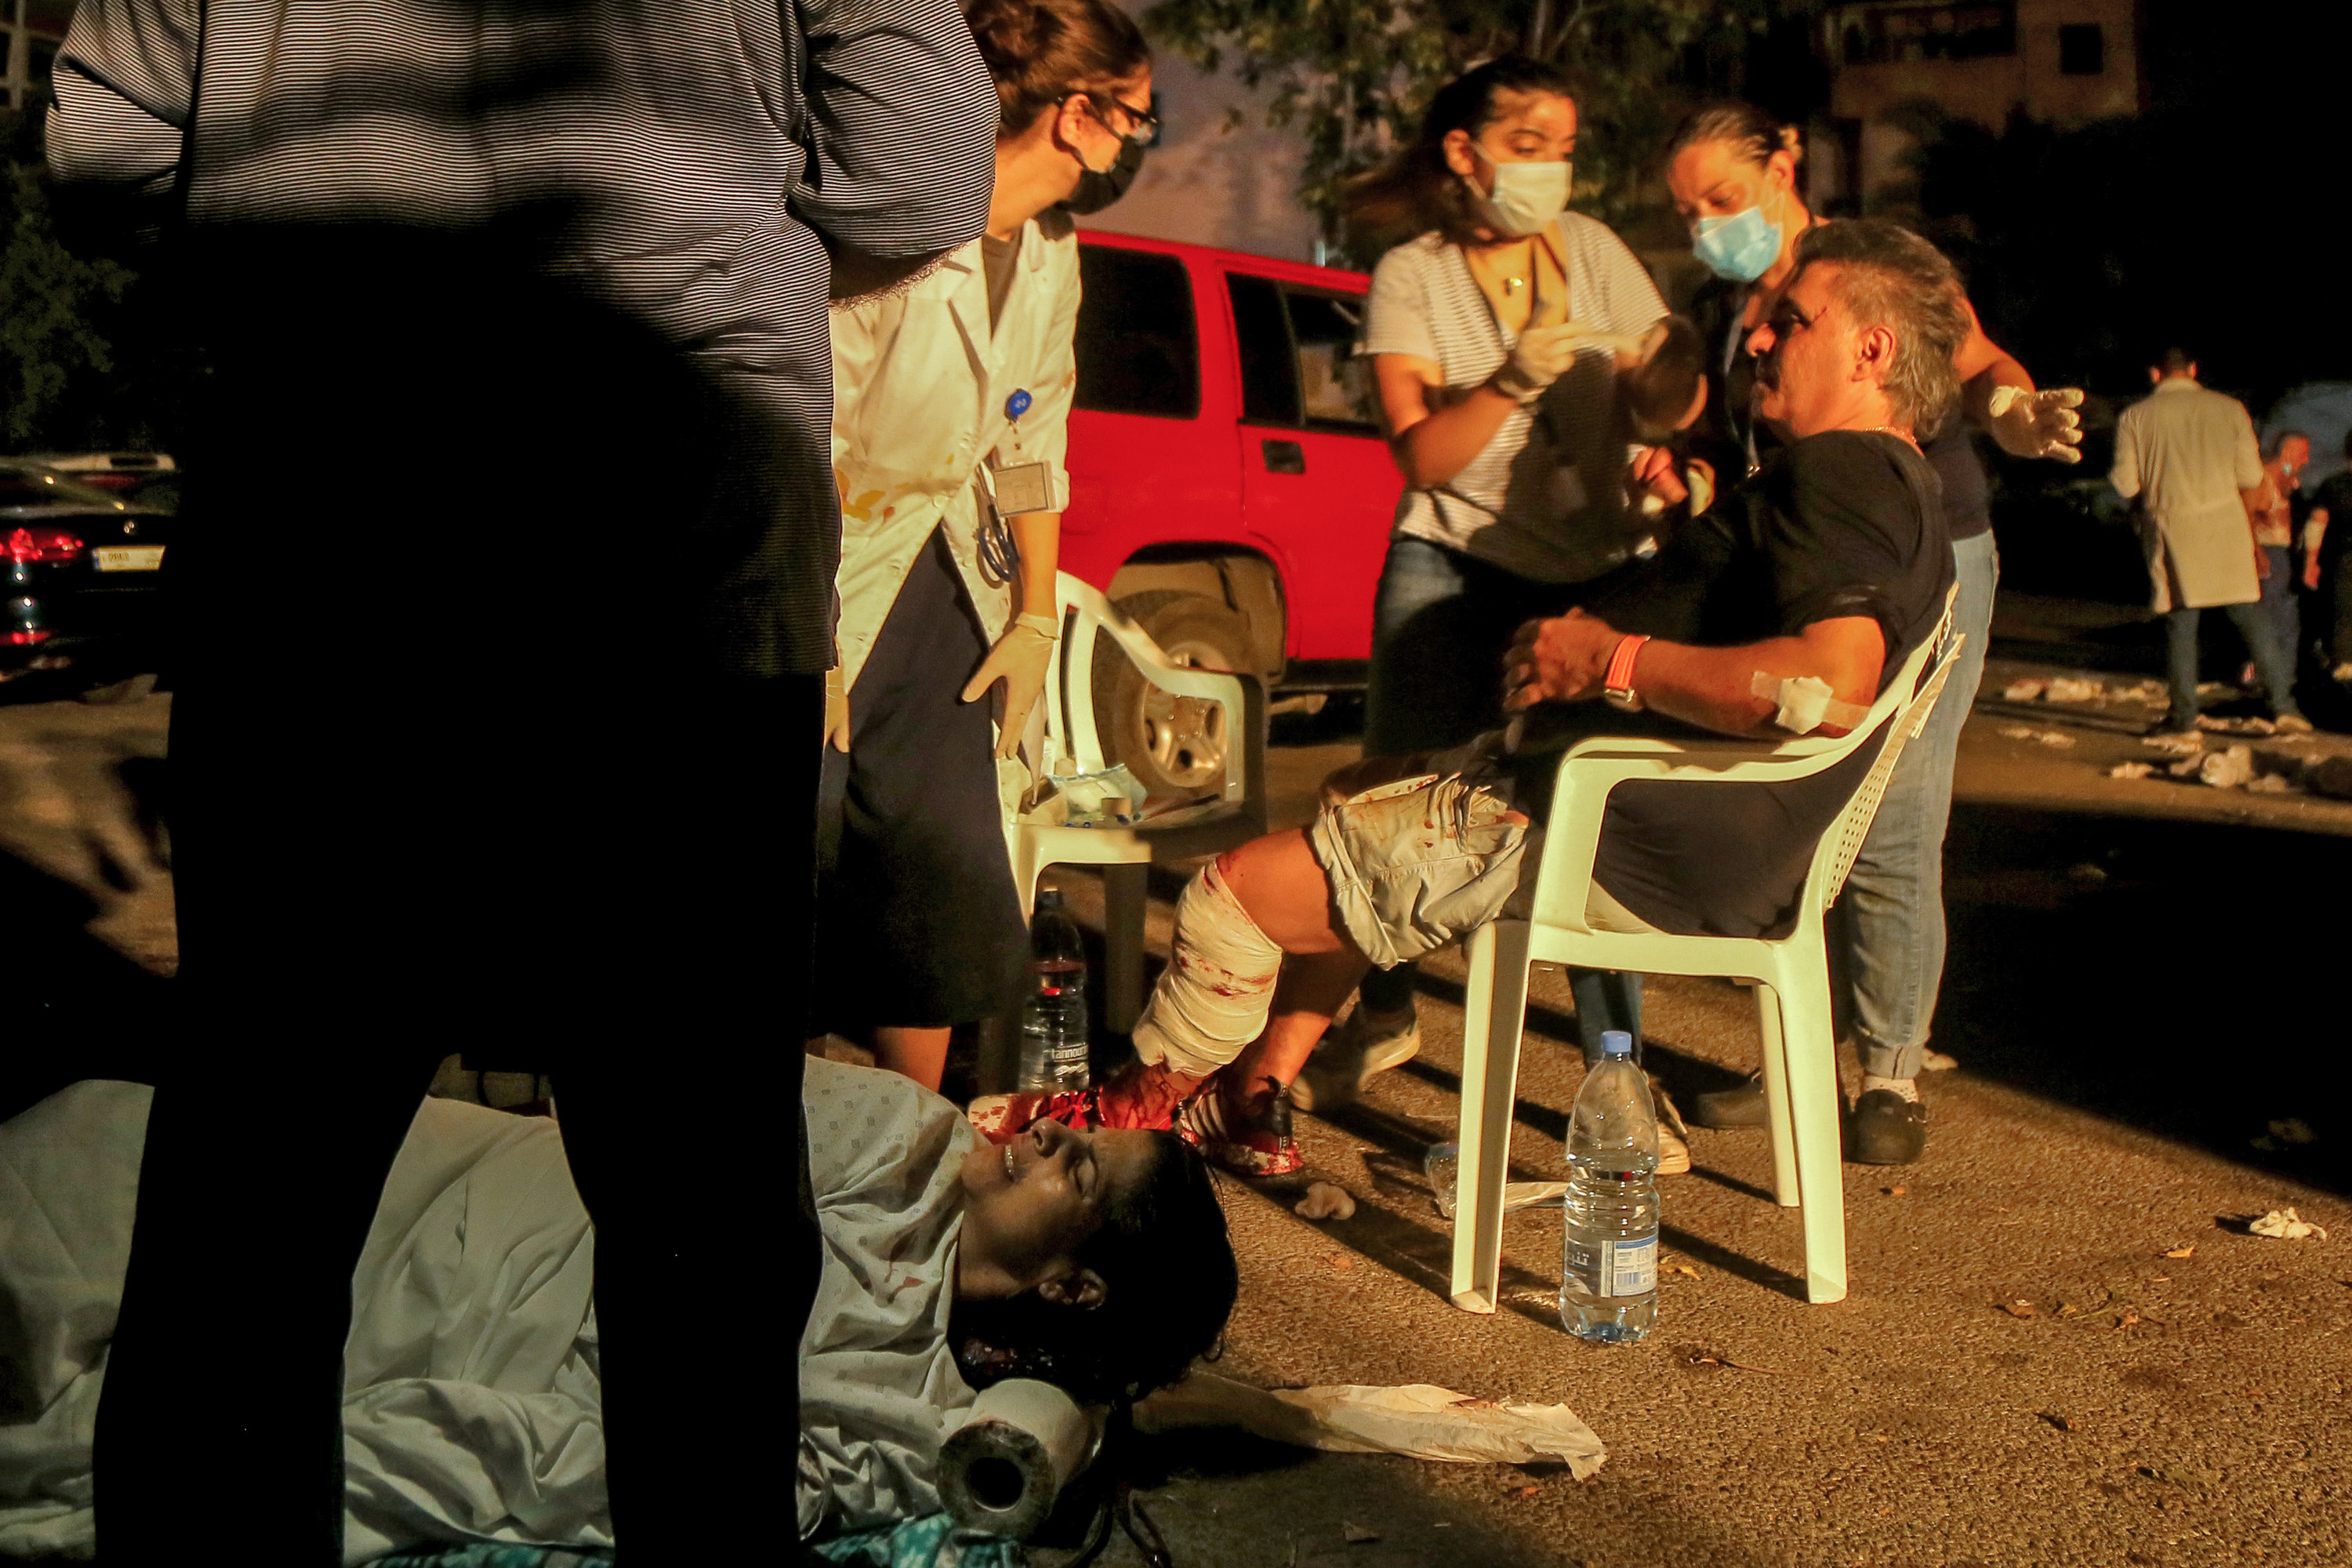 An injured woman lies on the ground and a man with a leg injury sits behind her outside the hospital while a doctor talks to them